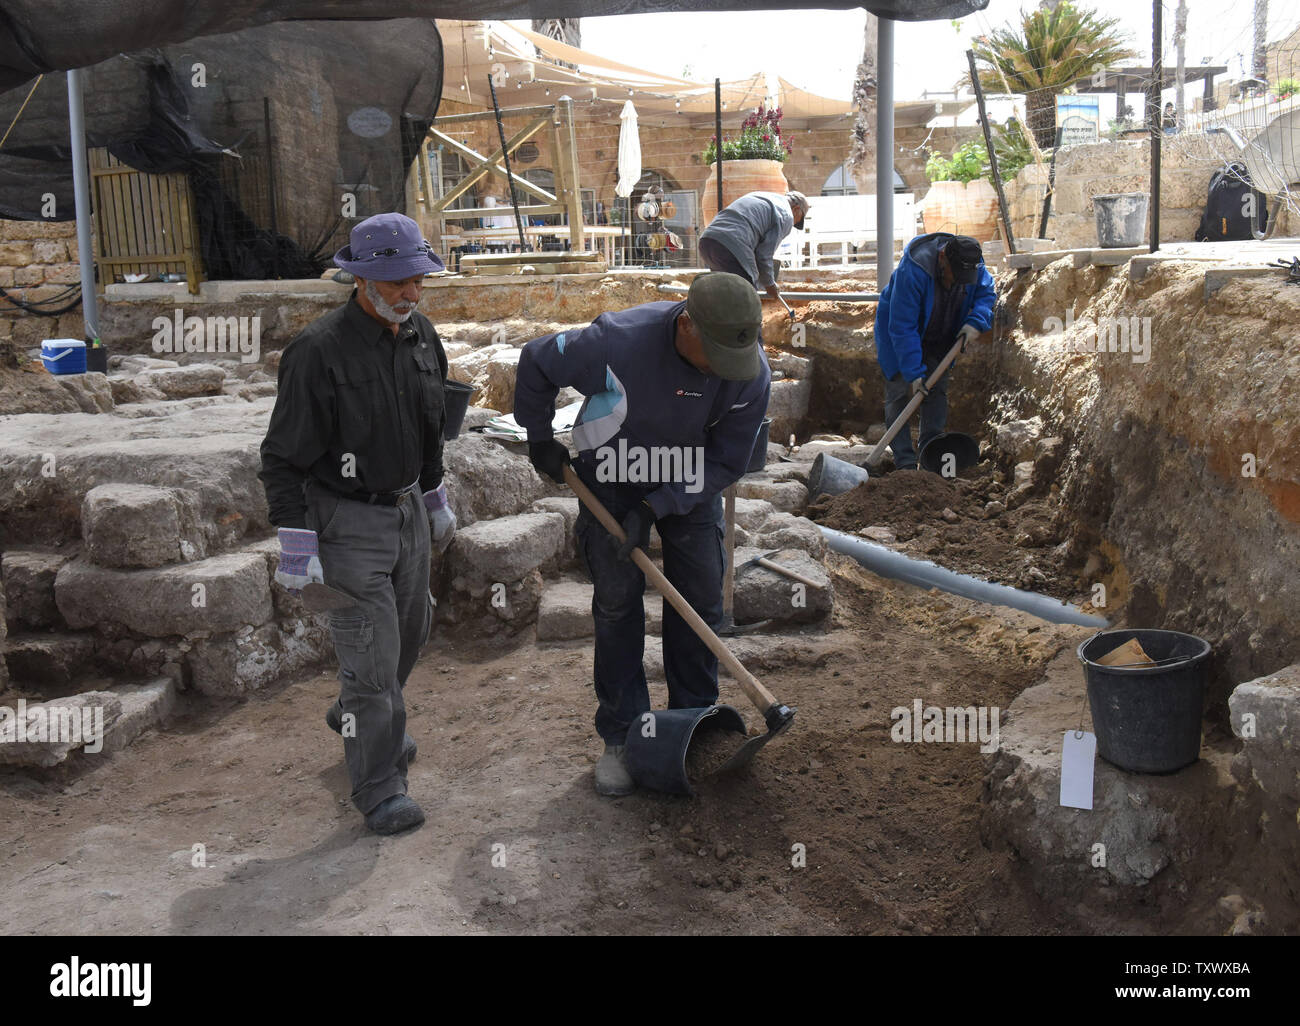 Workers excavate an area of 'Roma and Augusta Temple' that is being excavated by the Israeli Antiquity Authority in Caesarea, Israel, April 26, 2017. The Temple was constructed in the first century by King Herod in honor of Augustus Caesar. The Edmond de Rothschild Foundations is investing approximately $275,000 to expose and restore Caesarea's hidden treasures.  Photo by Debbie Hill/UPI - Stock Image